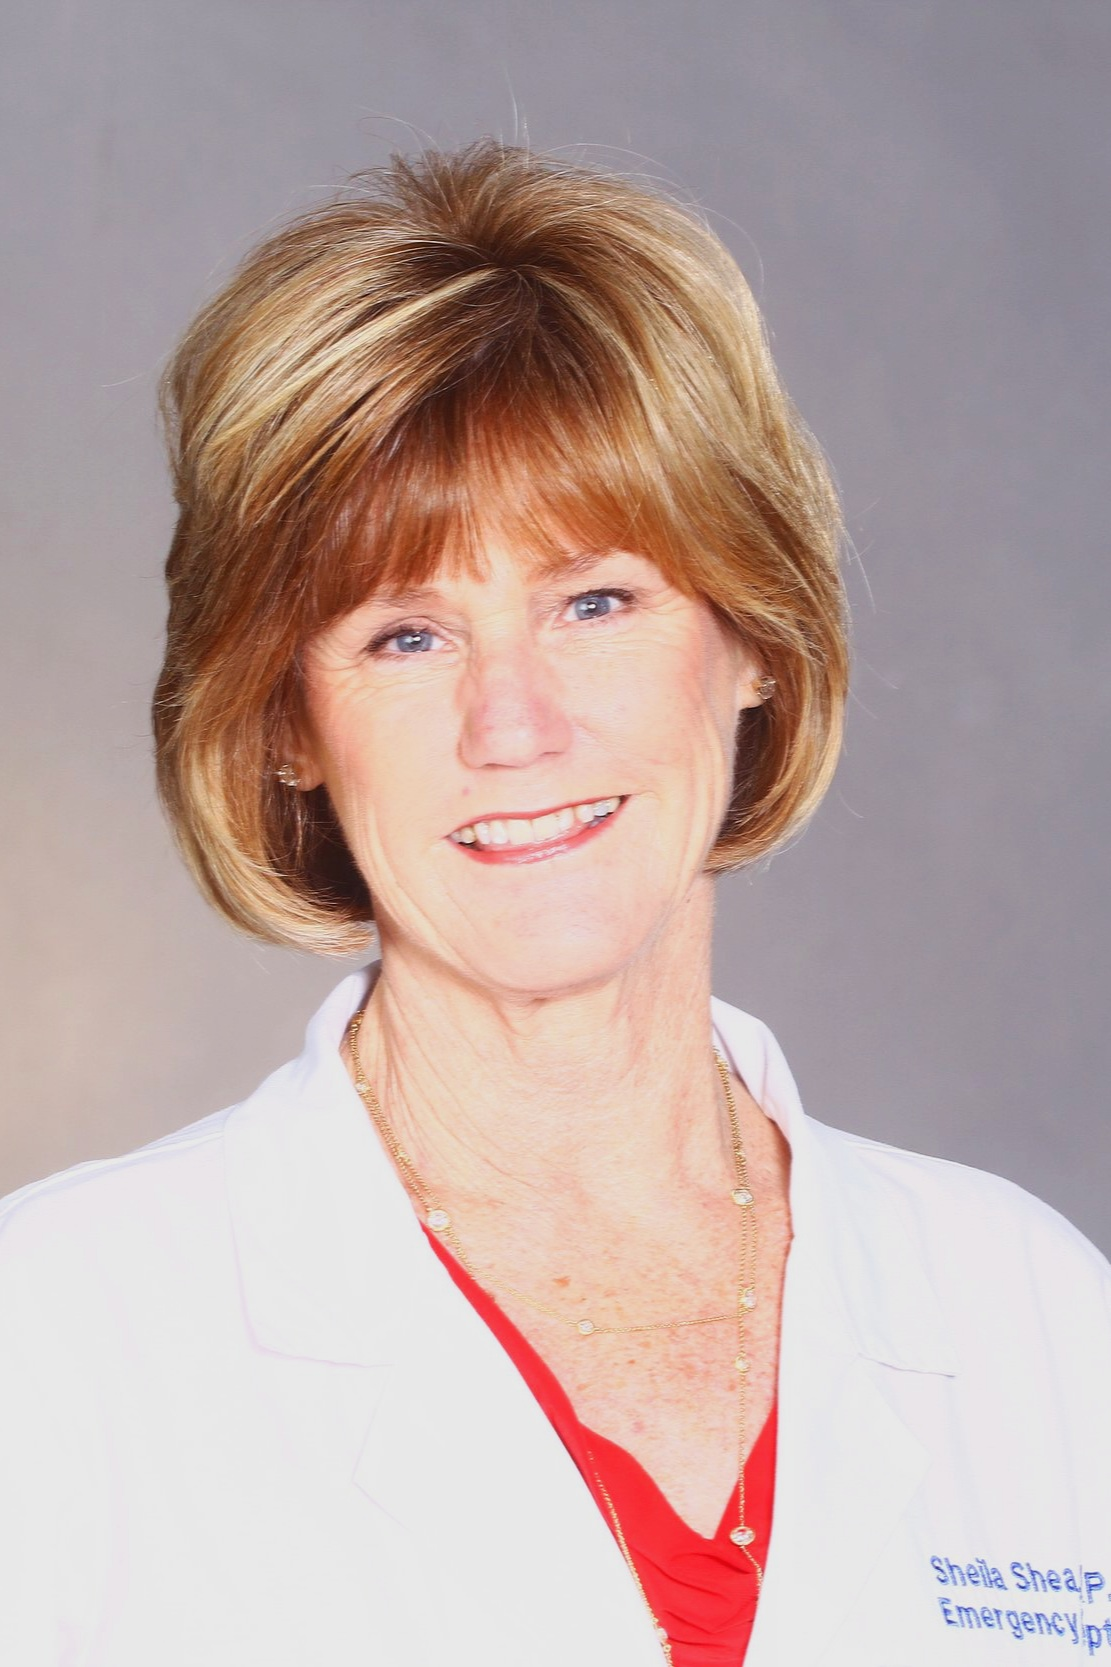 "Sheila Shea, FNP - Career Highlights: Lead NP for LBEMG and NP/PA Fellowship Director Founding member of the American Association of Emergency Nurse Practitioners (AAENP)Co-author of book series ""Emergency NP/PA Pocket Reference Guide: A Useful Approach to Emergent and Urgent Care"""